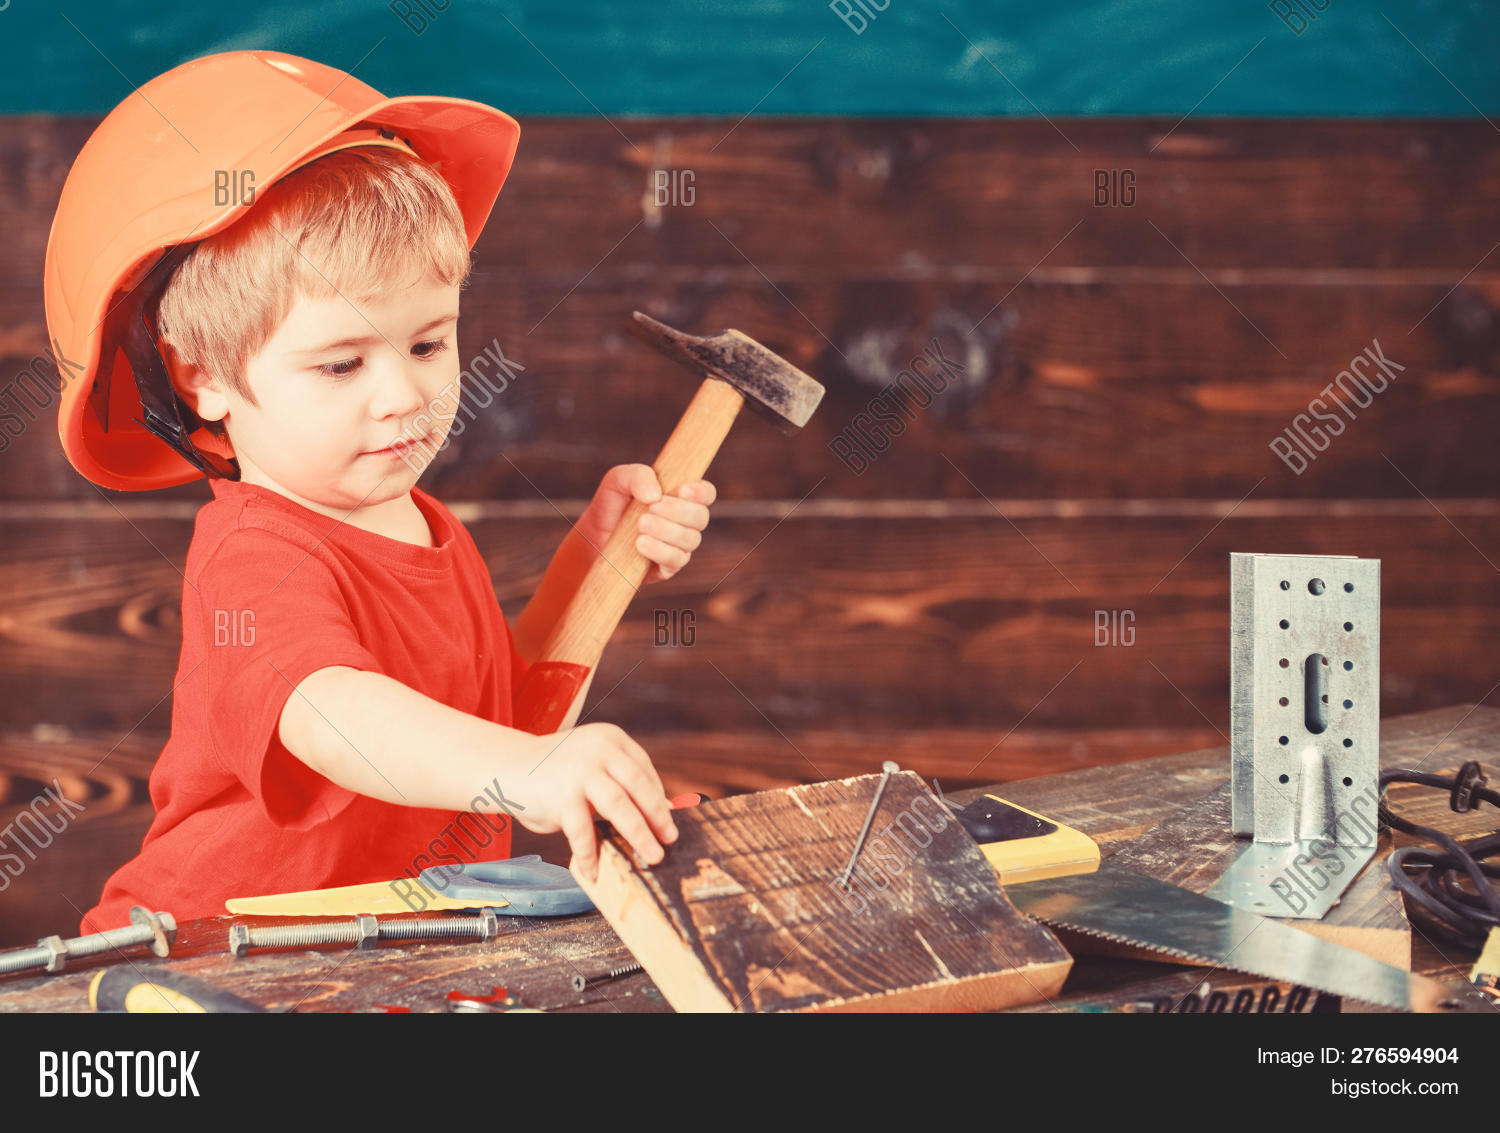 activity,adorable,background,board,boy,build,builder,busy,carpenter,caucasian,child,childhood,concept,construction,craft,cute,detail,education,engineer,equipment,future,game,hammer,hammering,handcraft,handyman,helmet,home,instrument,kid,labor,laborer,learn,little,nail,play,preschooler,profession,professional,repair,repairer,safety,small,toddler,tool,use,wooden,work,workshop